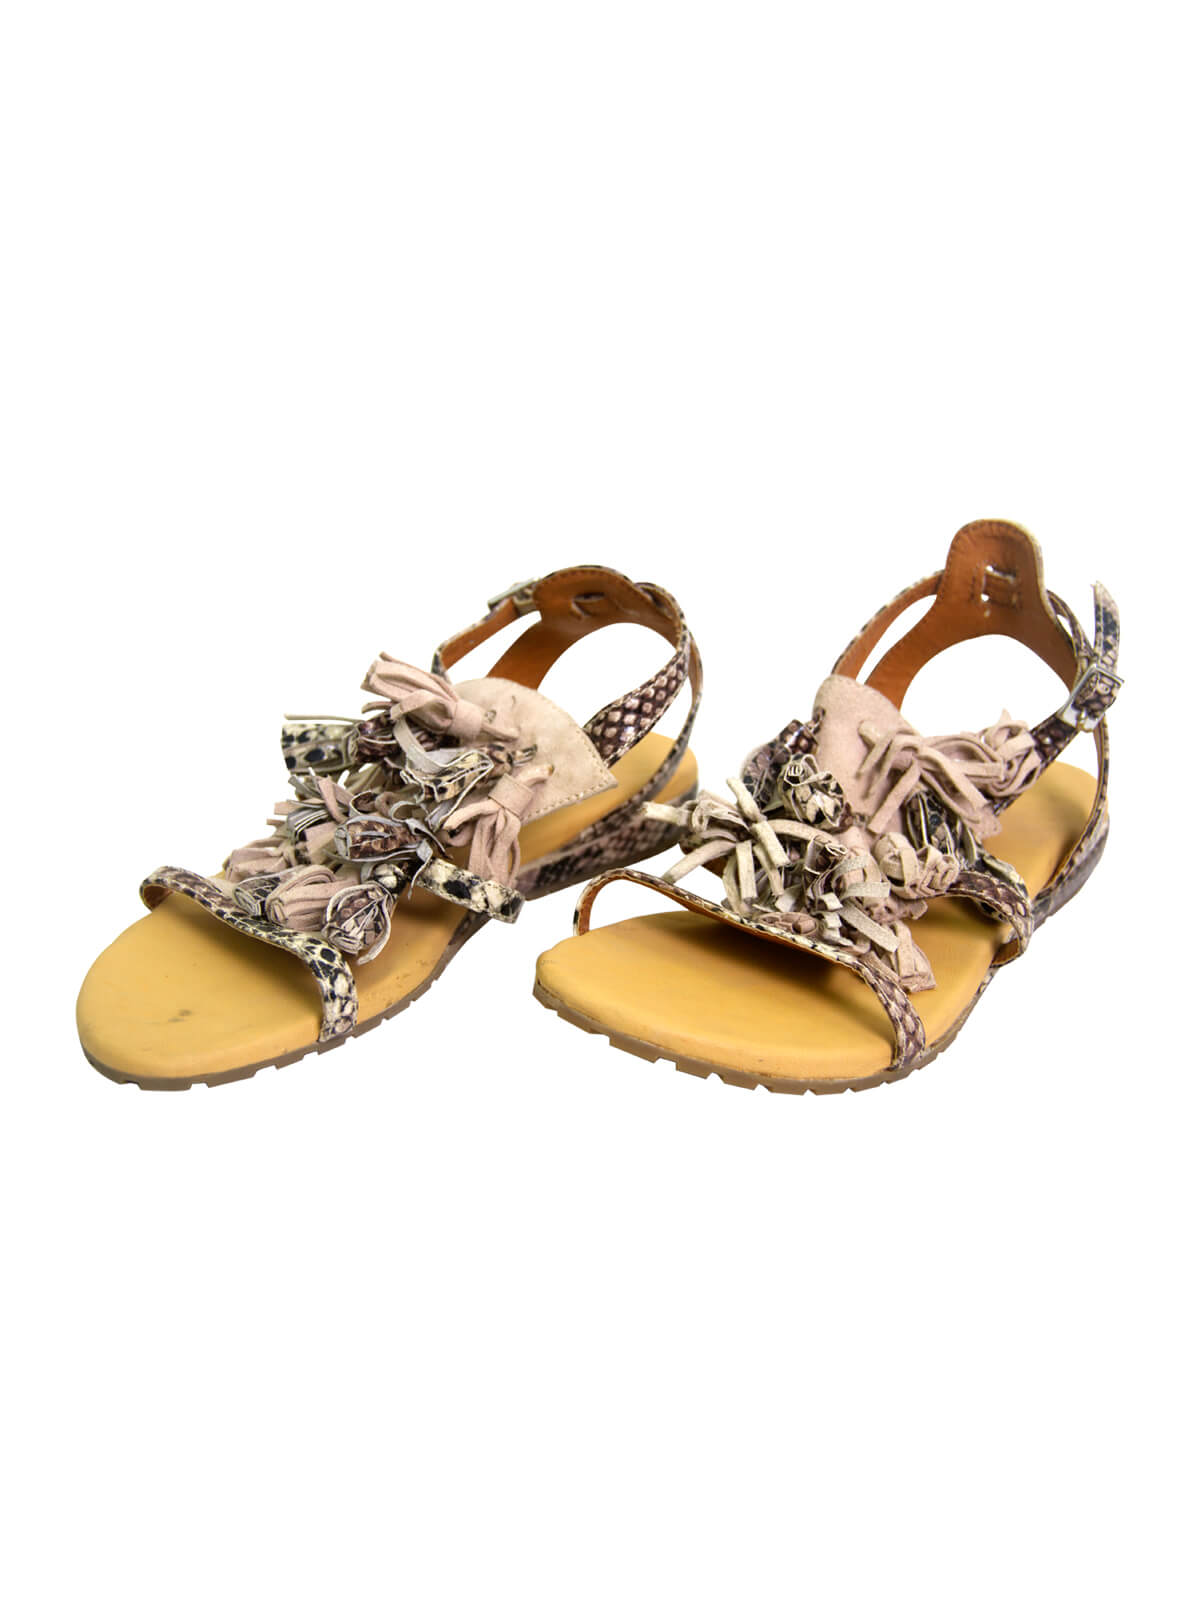 Casablanca Yellow Leather Flat Ladies Sandal